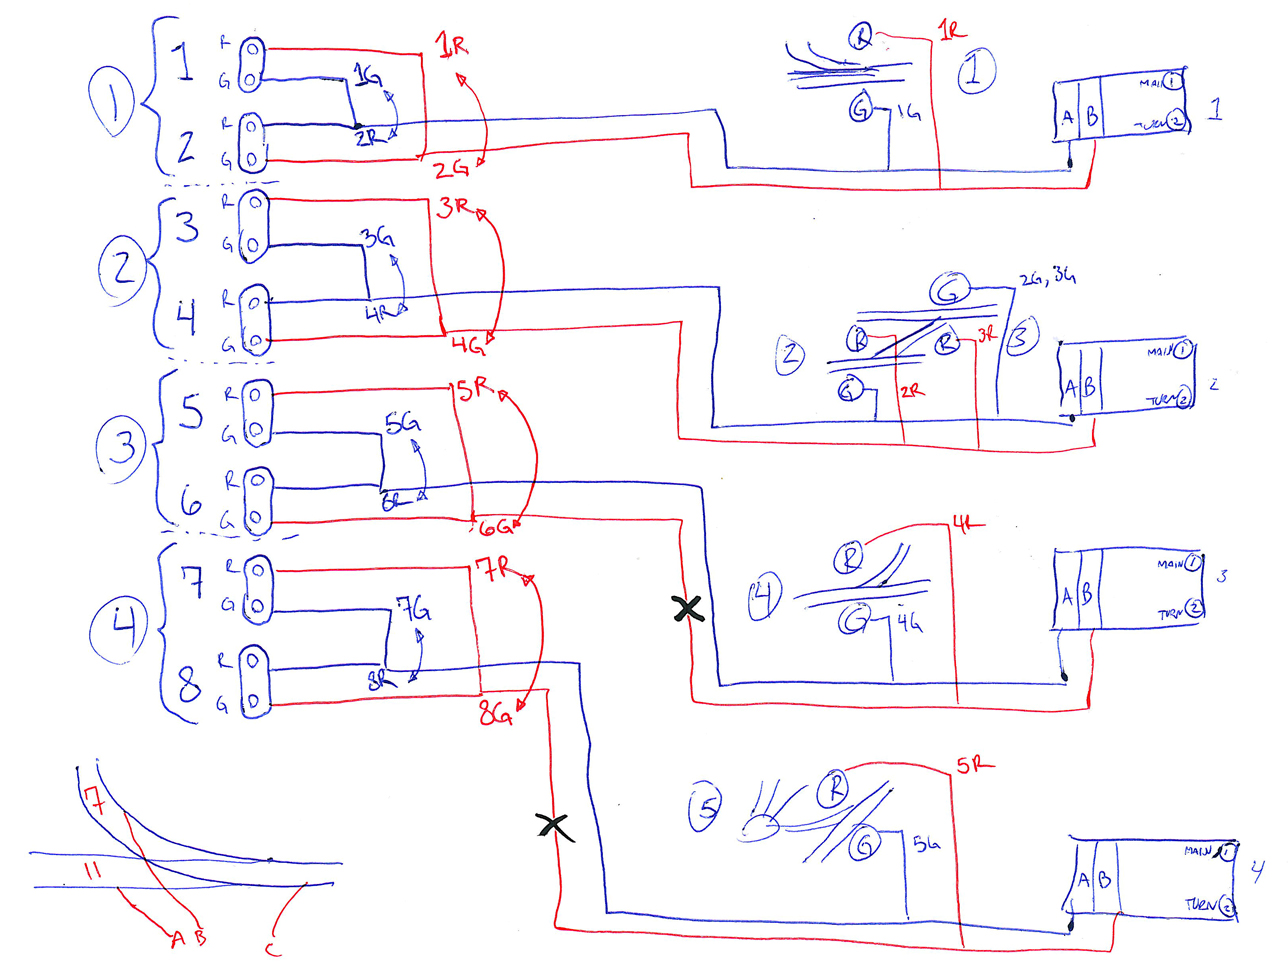 model railway signal wiring diagram 2006 honda civic lx ho scale roundhouse get free image about